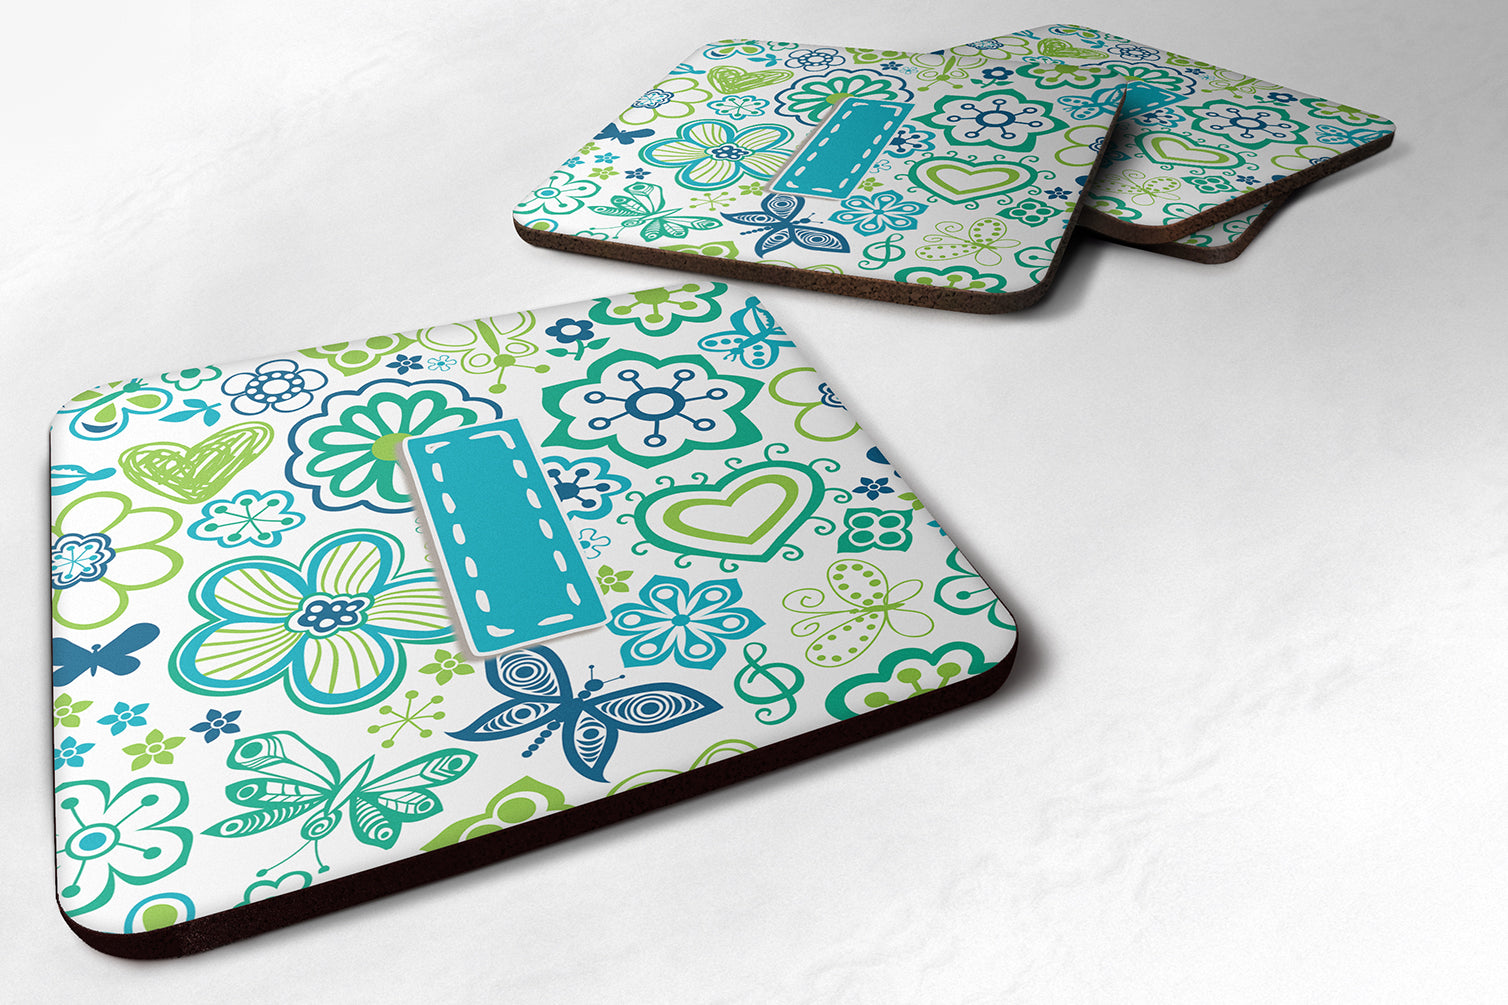 Set of 4 Letter I Flowers and Butterflies Teal Blue Foam Coasters CJ2006-IFC by Caroline's Treasures